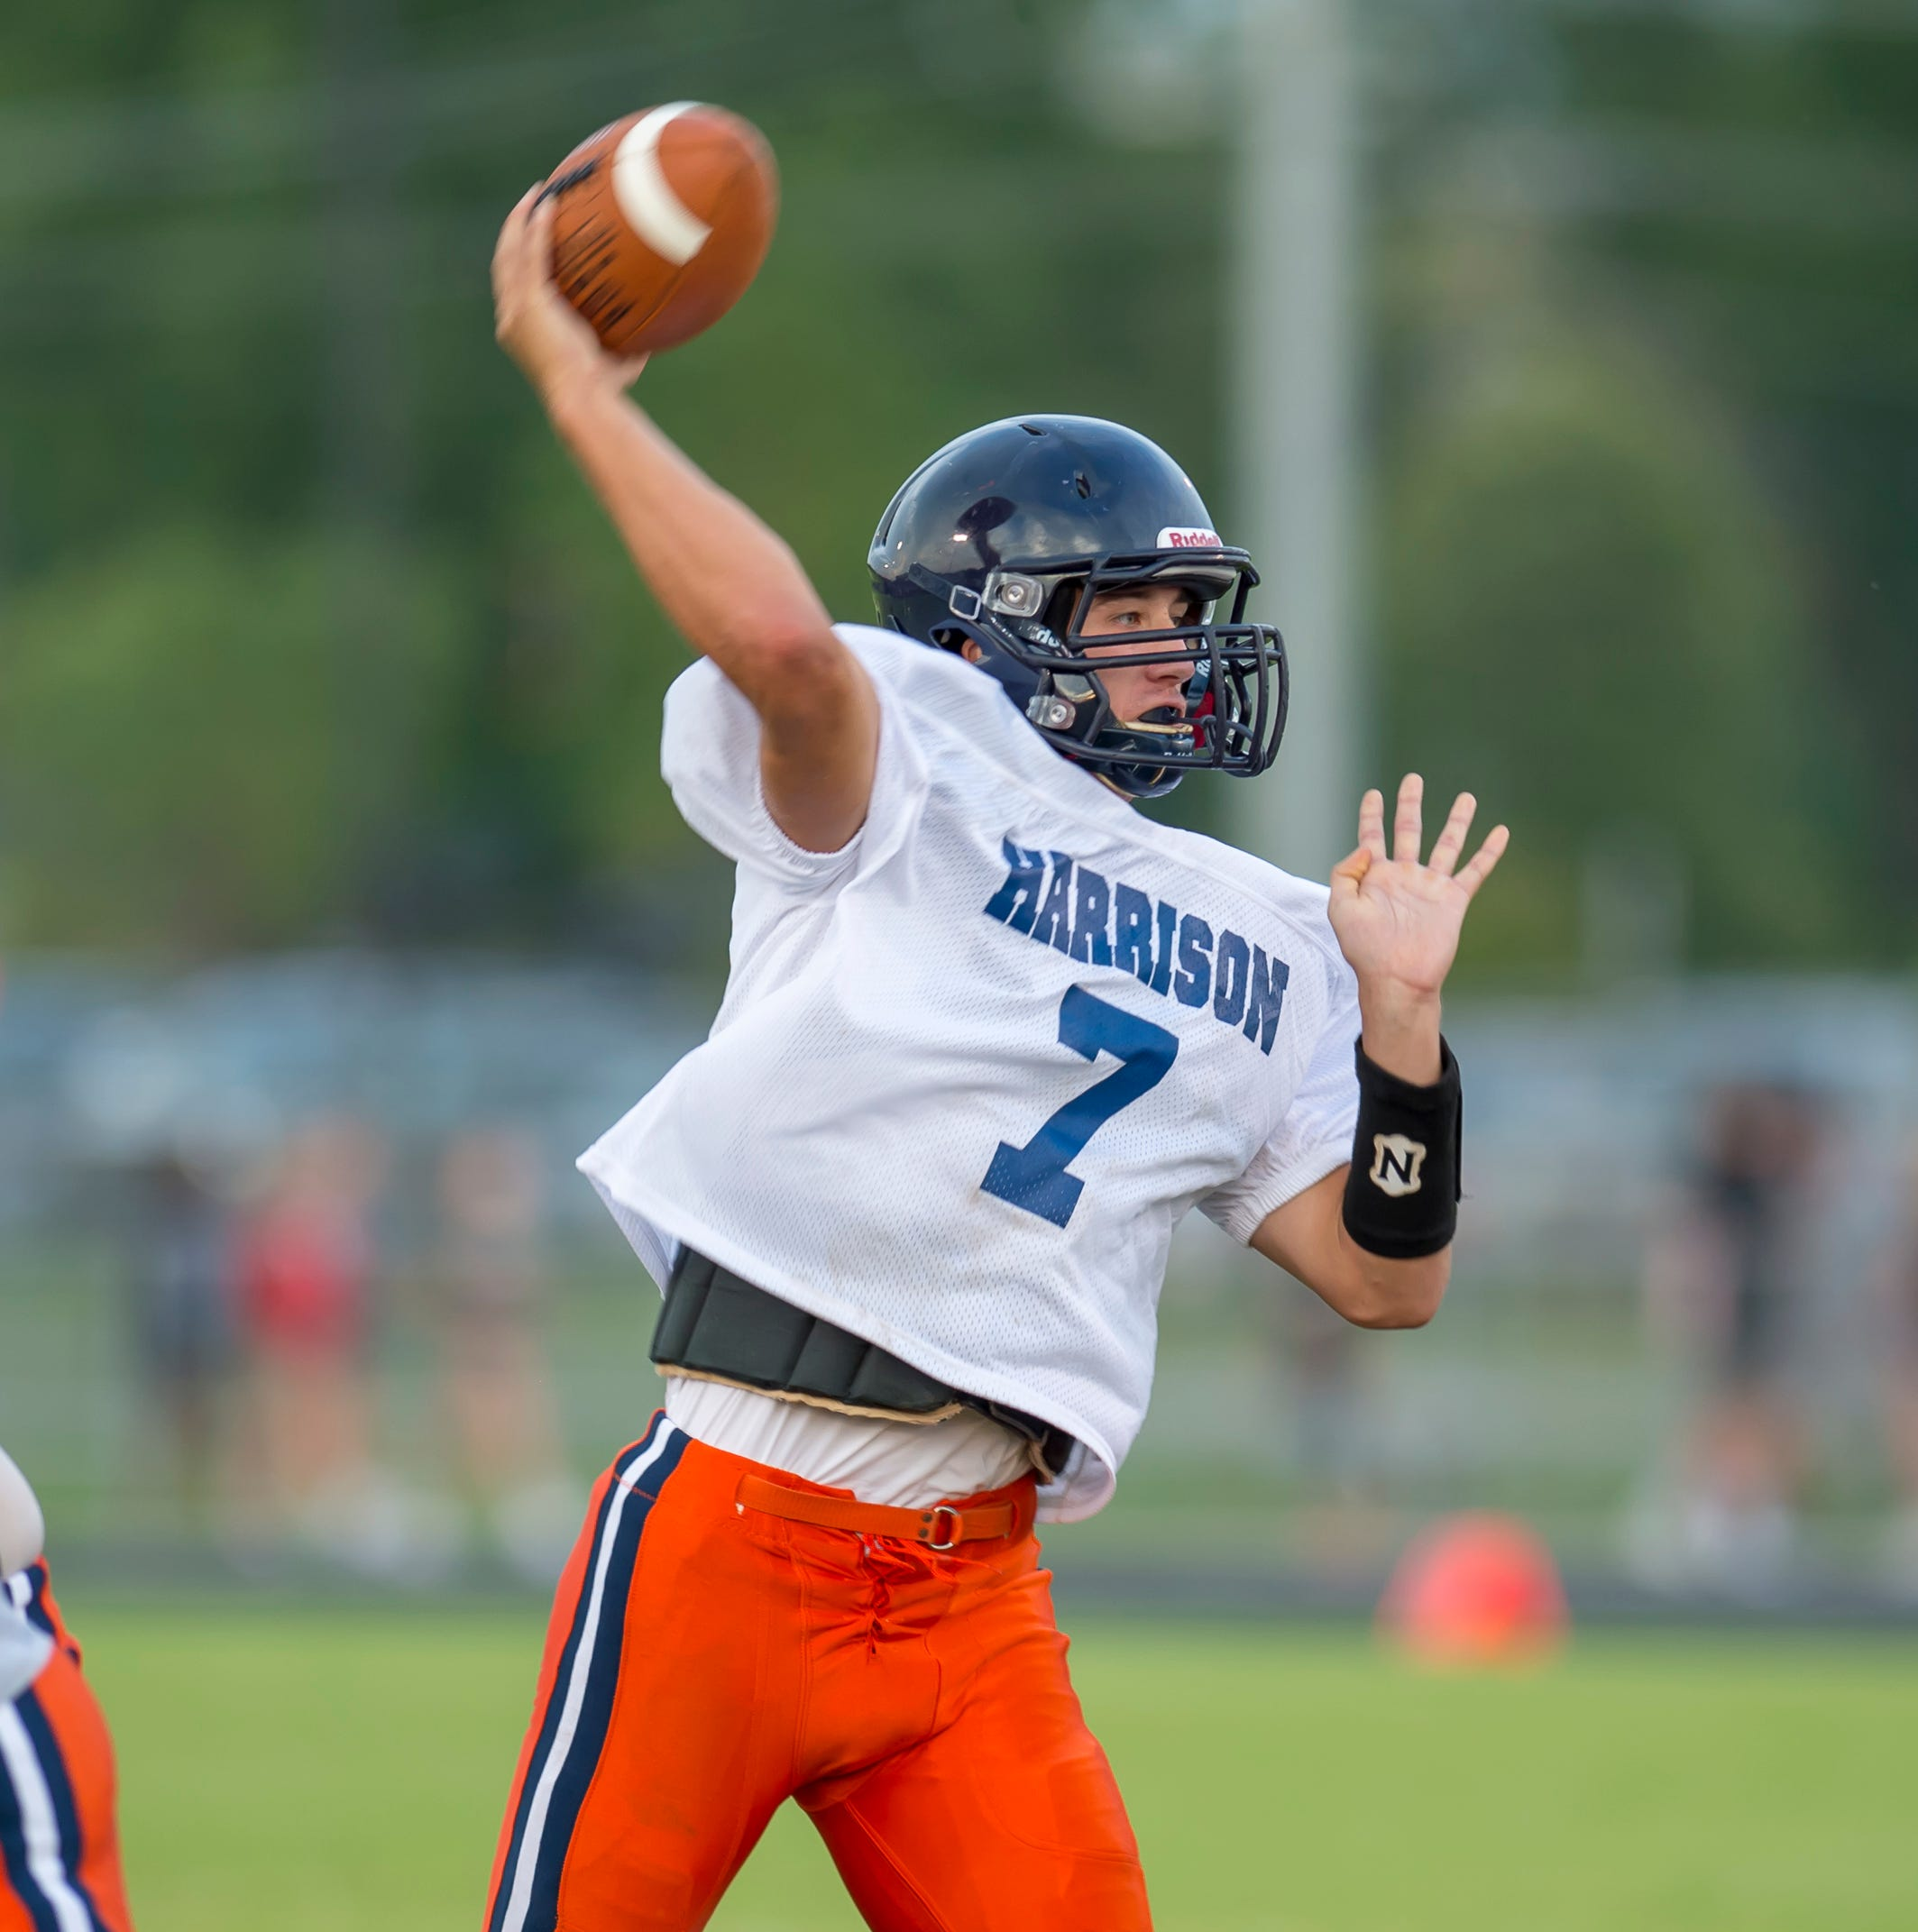 Harrison quarterback Andrew Jensen steps into leadership role